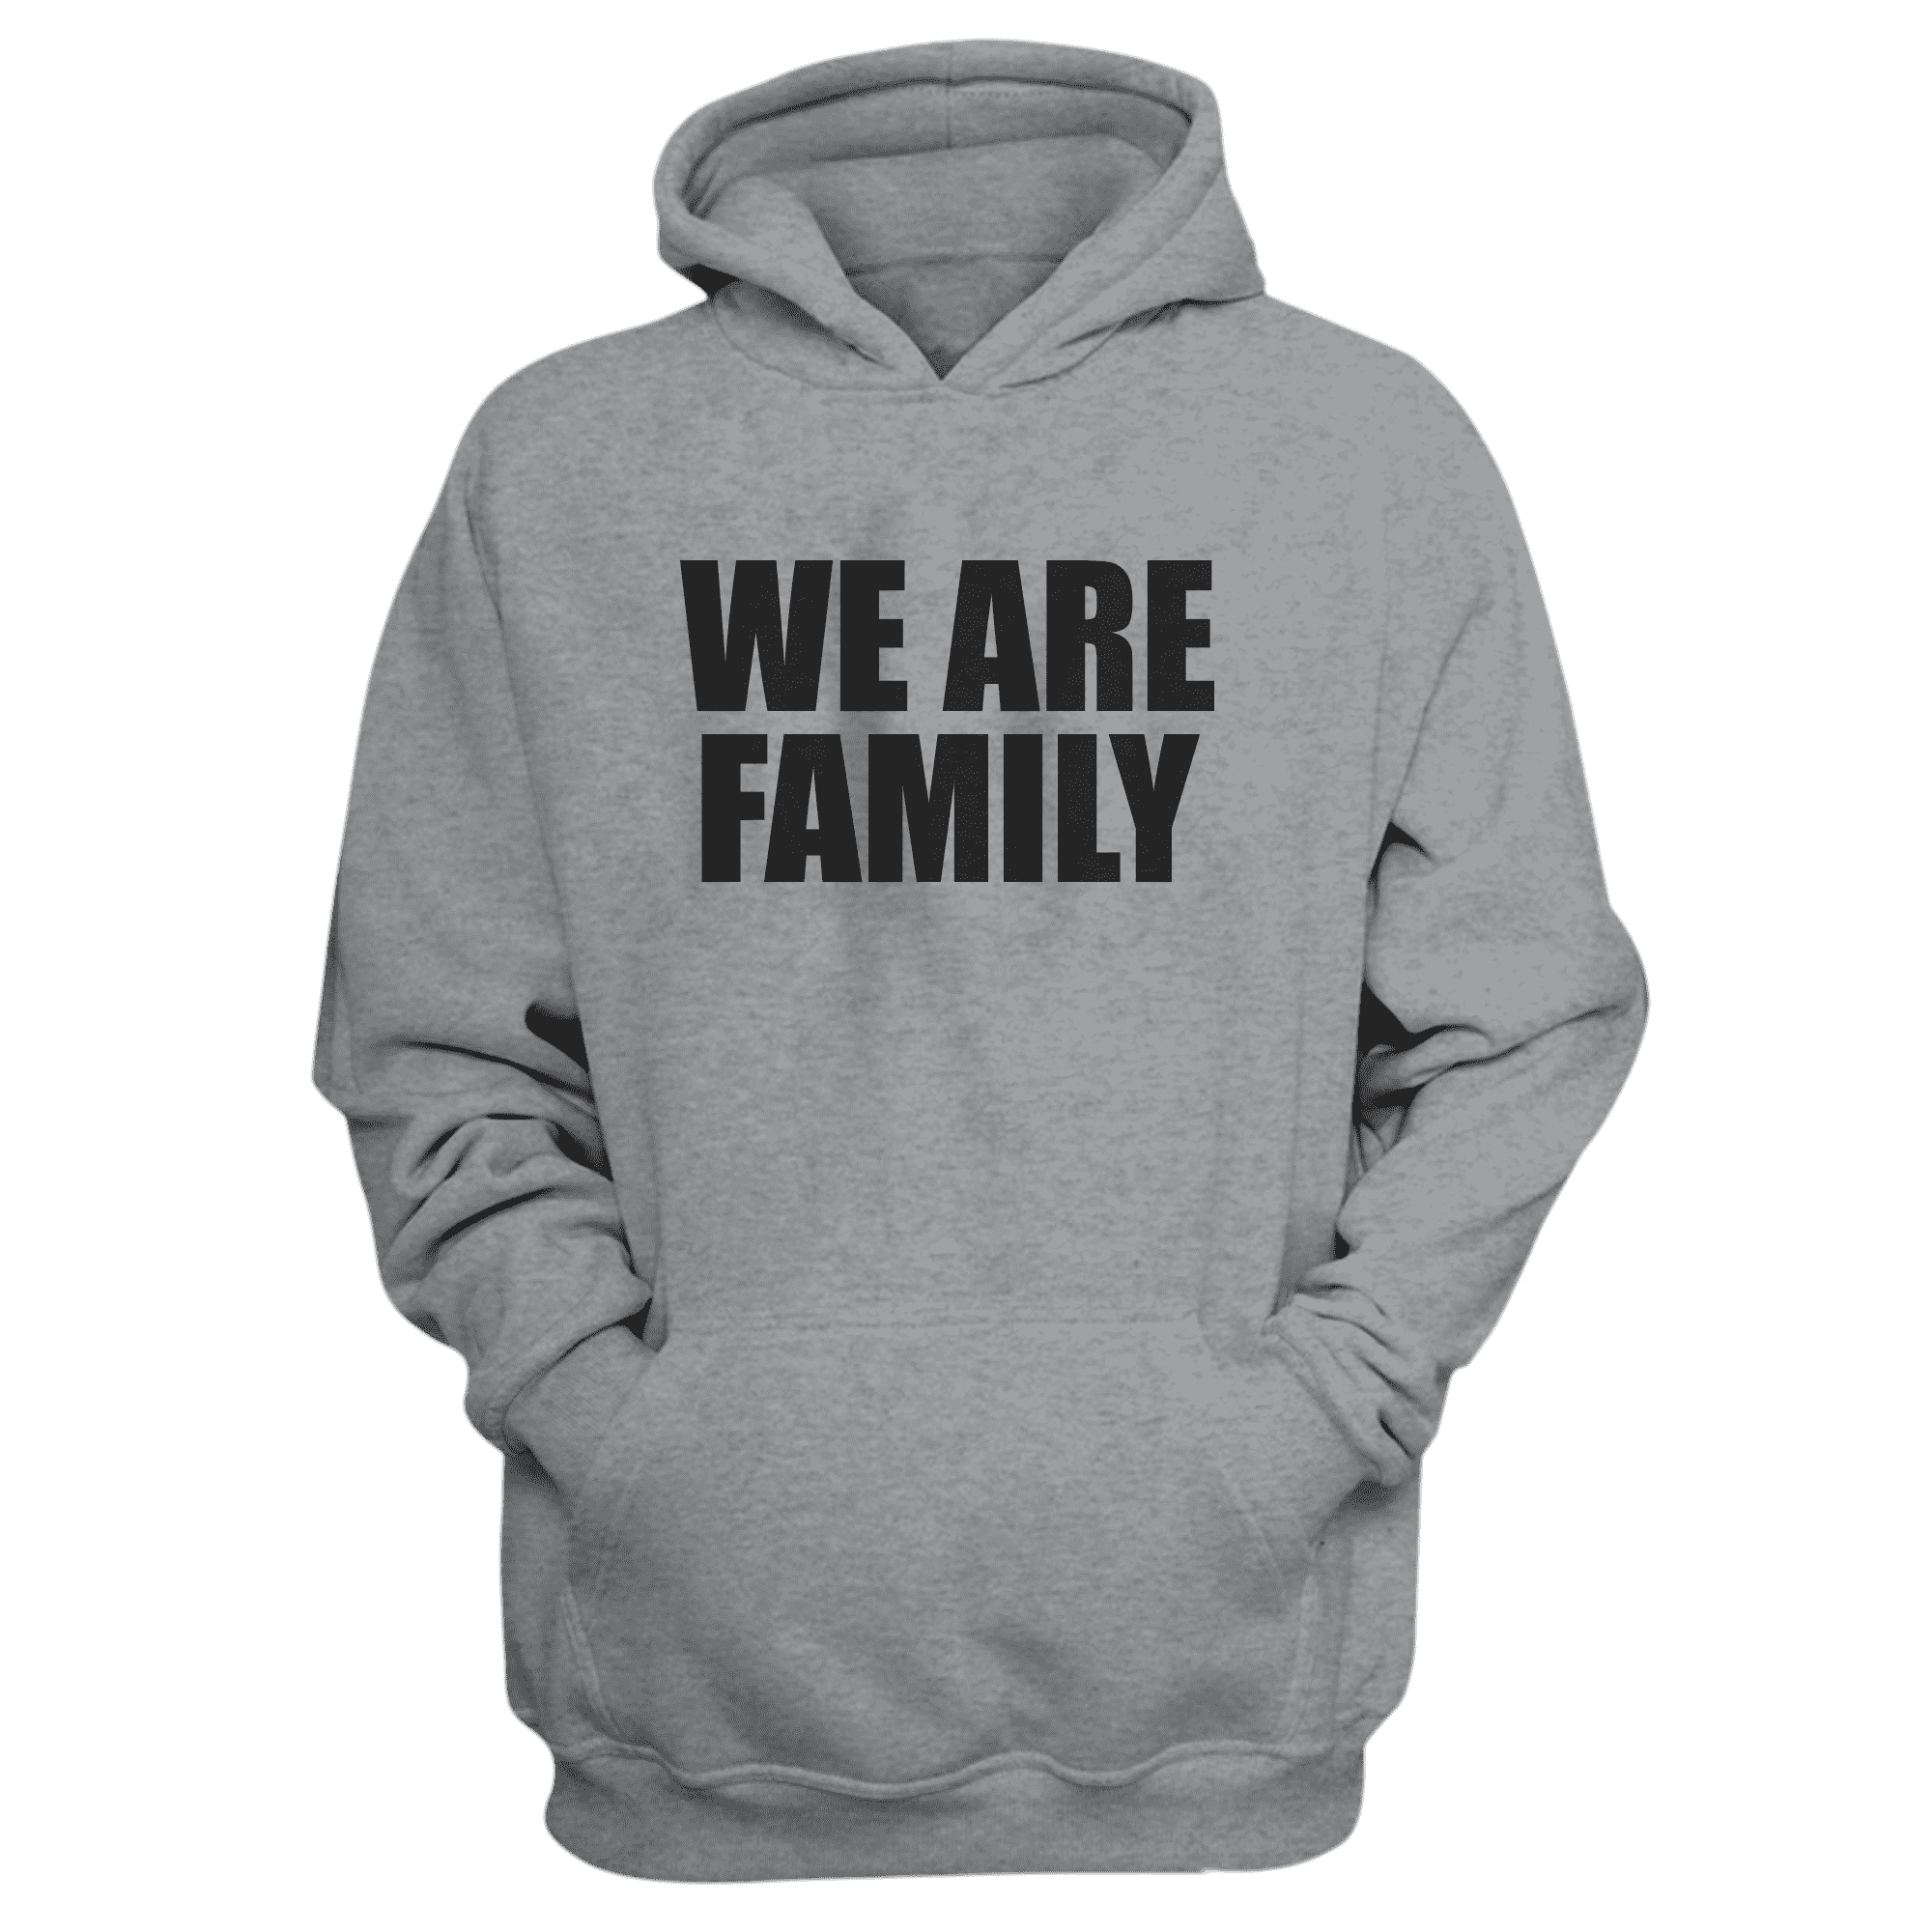 We Are Family Hoodie (HD-GRY-KLS-WHT-NP-WSH-BSKTBLL-wefamily-Syh-542)